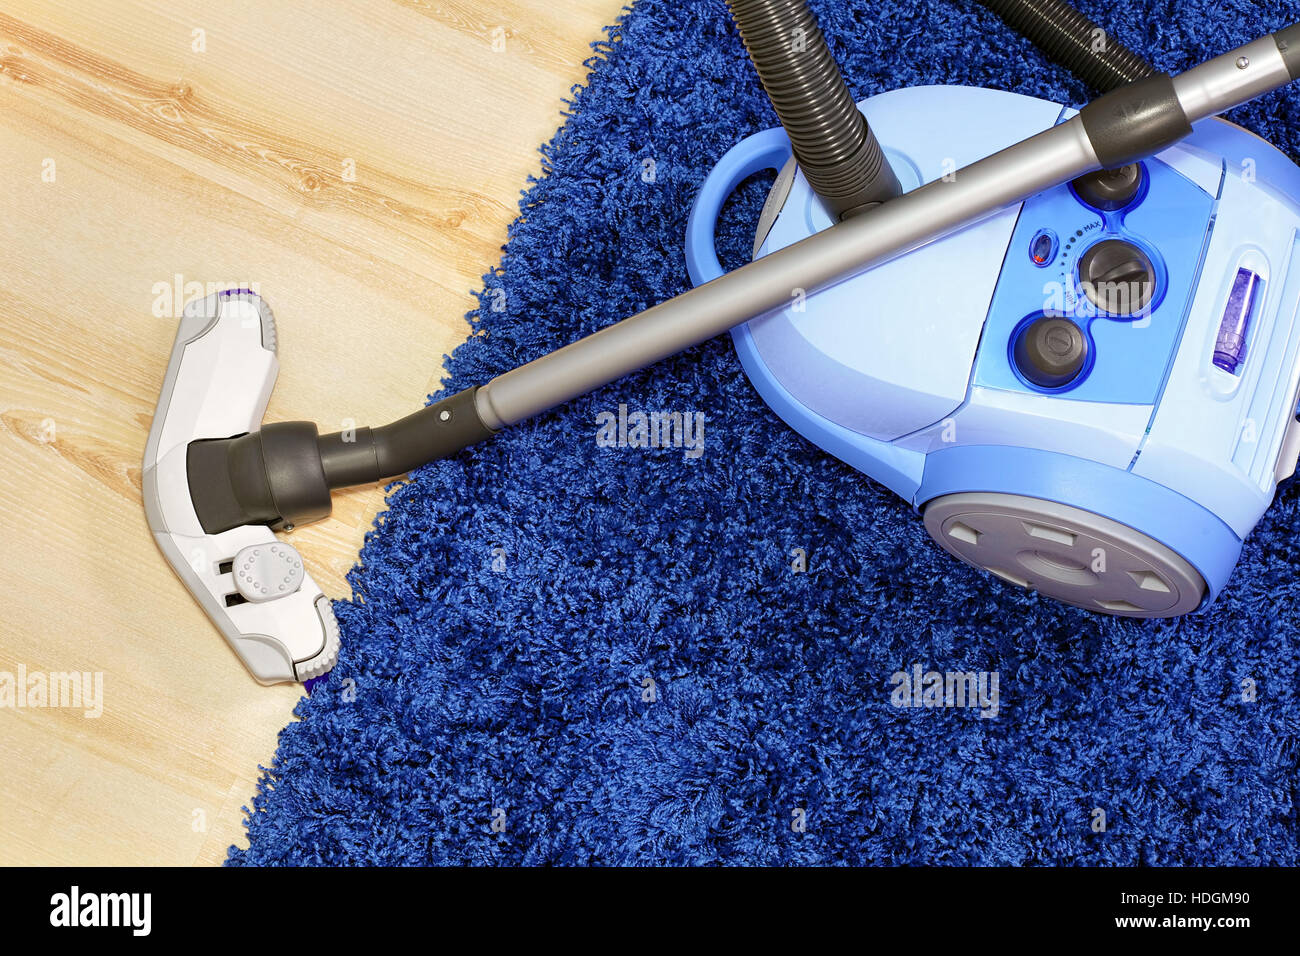 Powerful vacuum cleaner stand  on blue carpet. - Stock Image